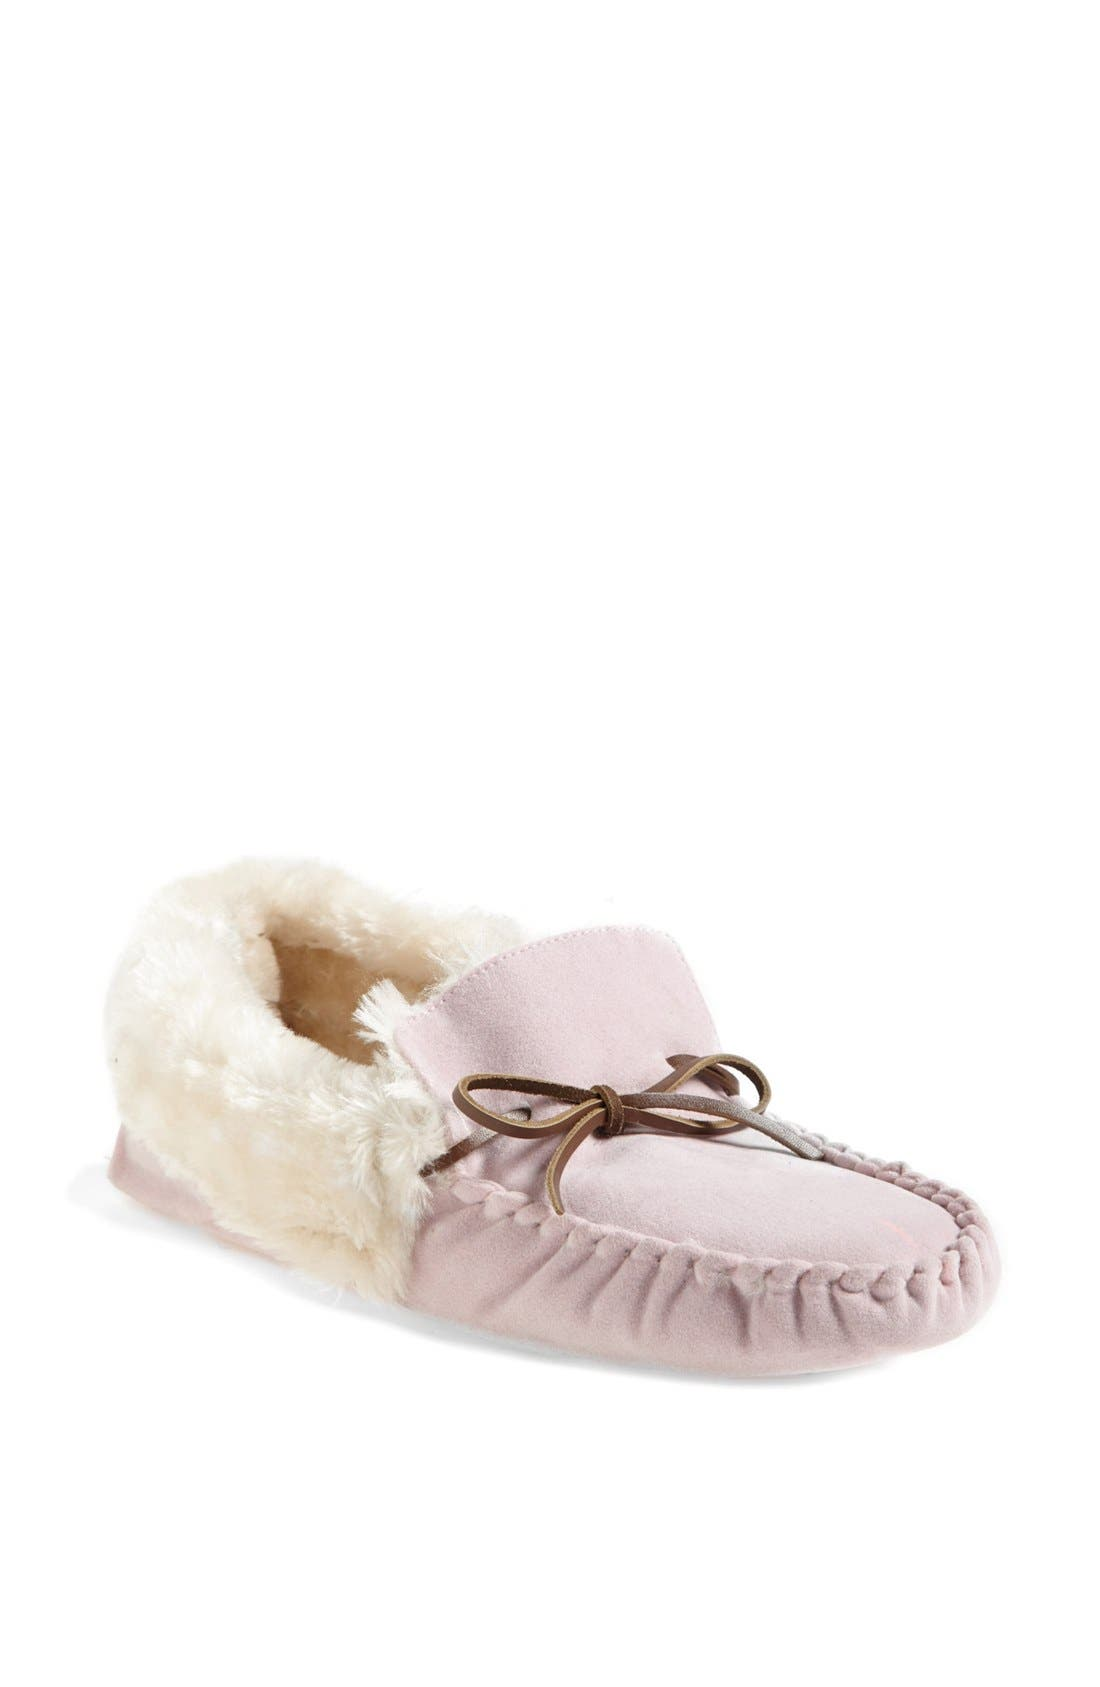 Main Image - Nordstrom Moccasin Slipper